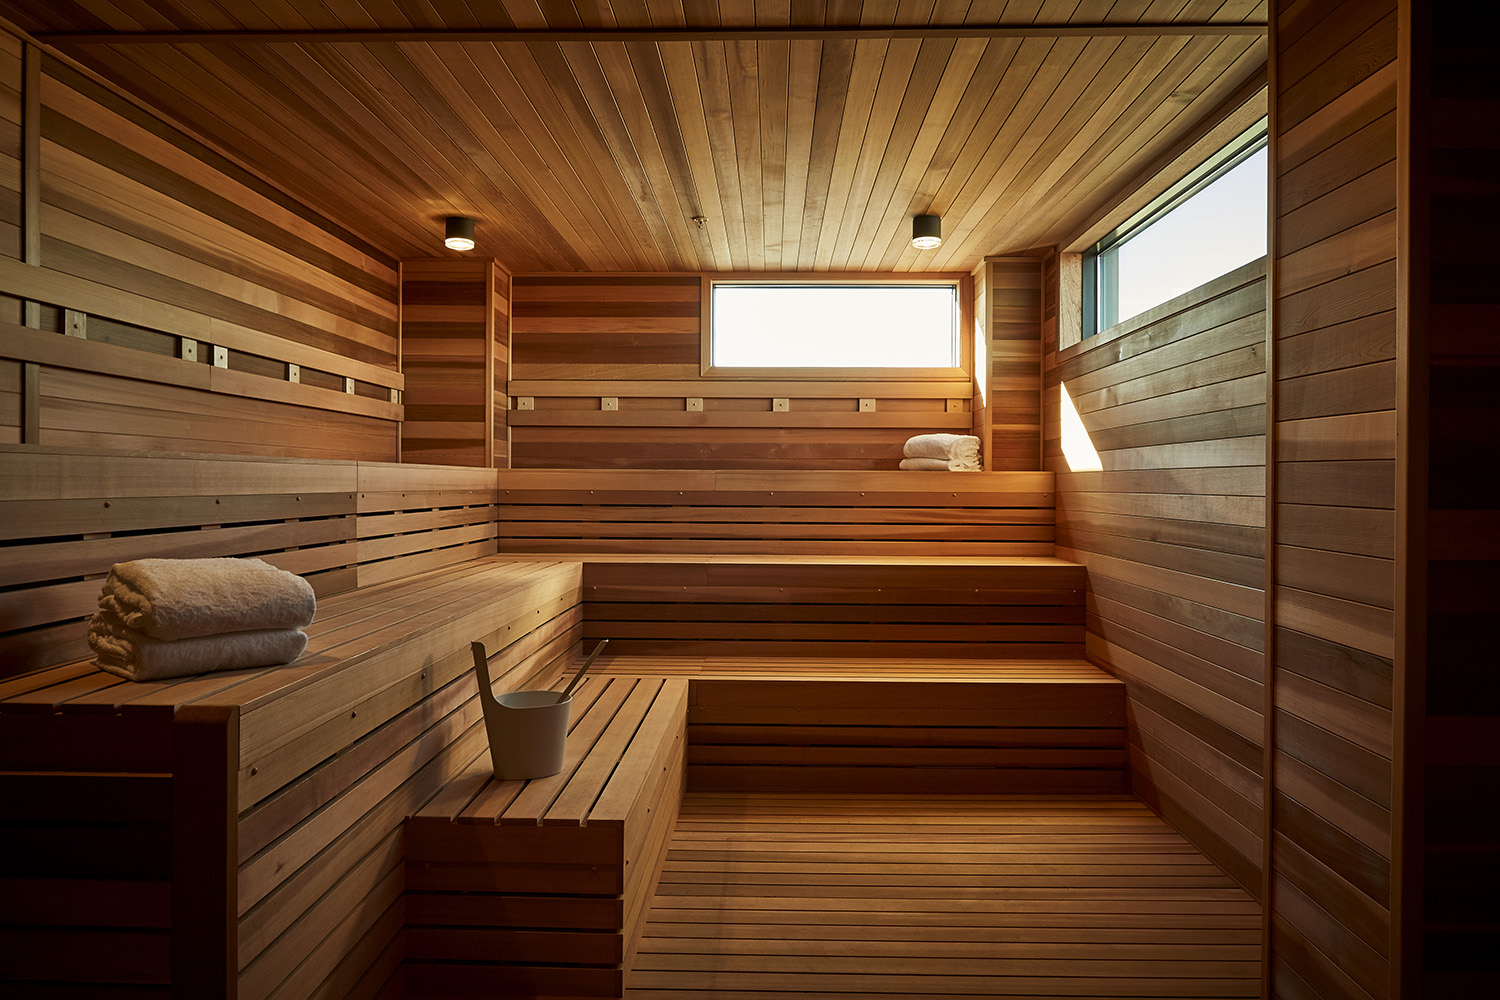 sauna resized.jpg